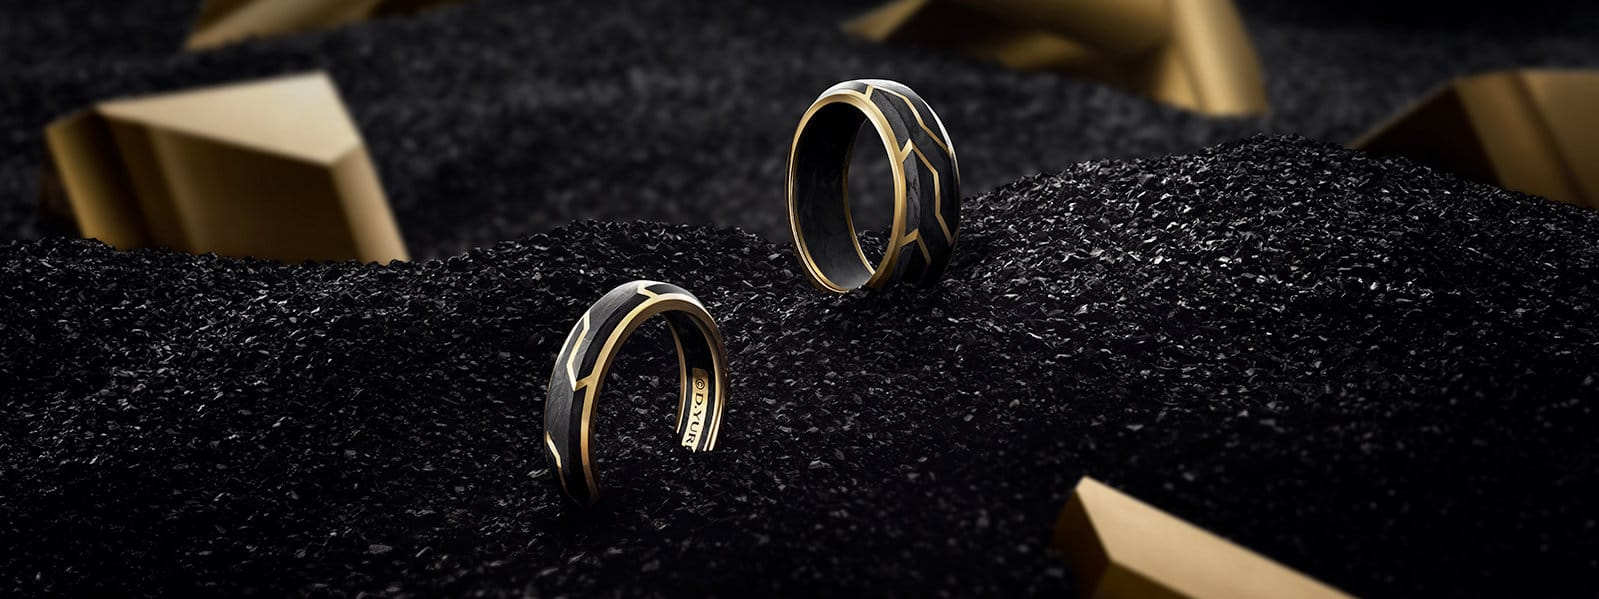 Forged Carbon band rings in 18K yellow gold stick out from a pile of forged shavings and gold blocks.